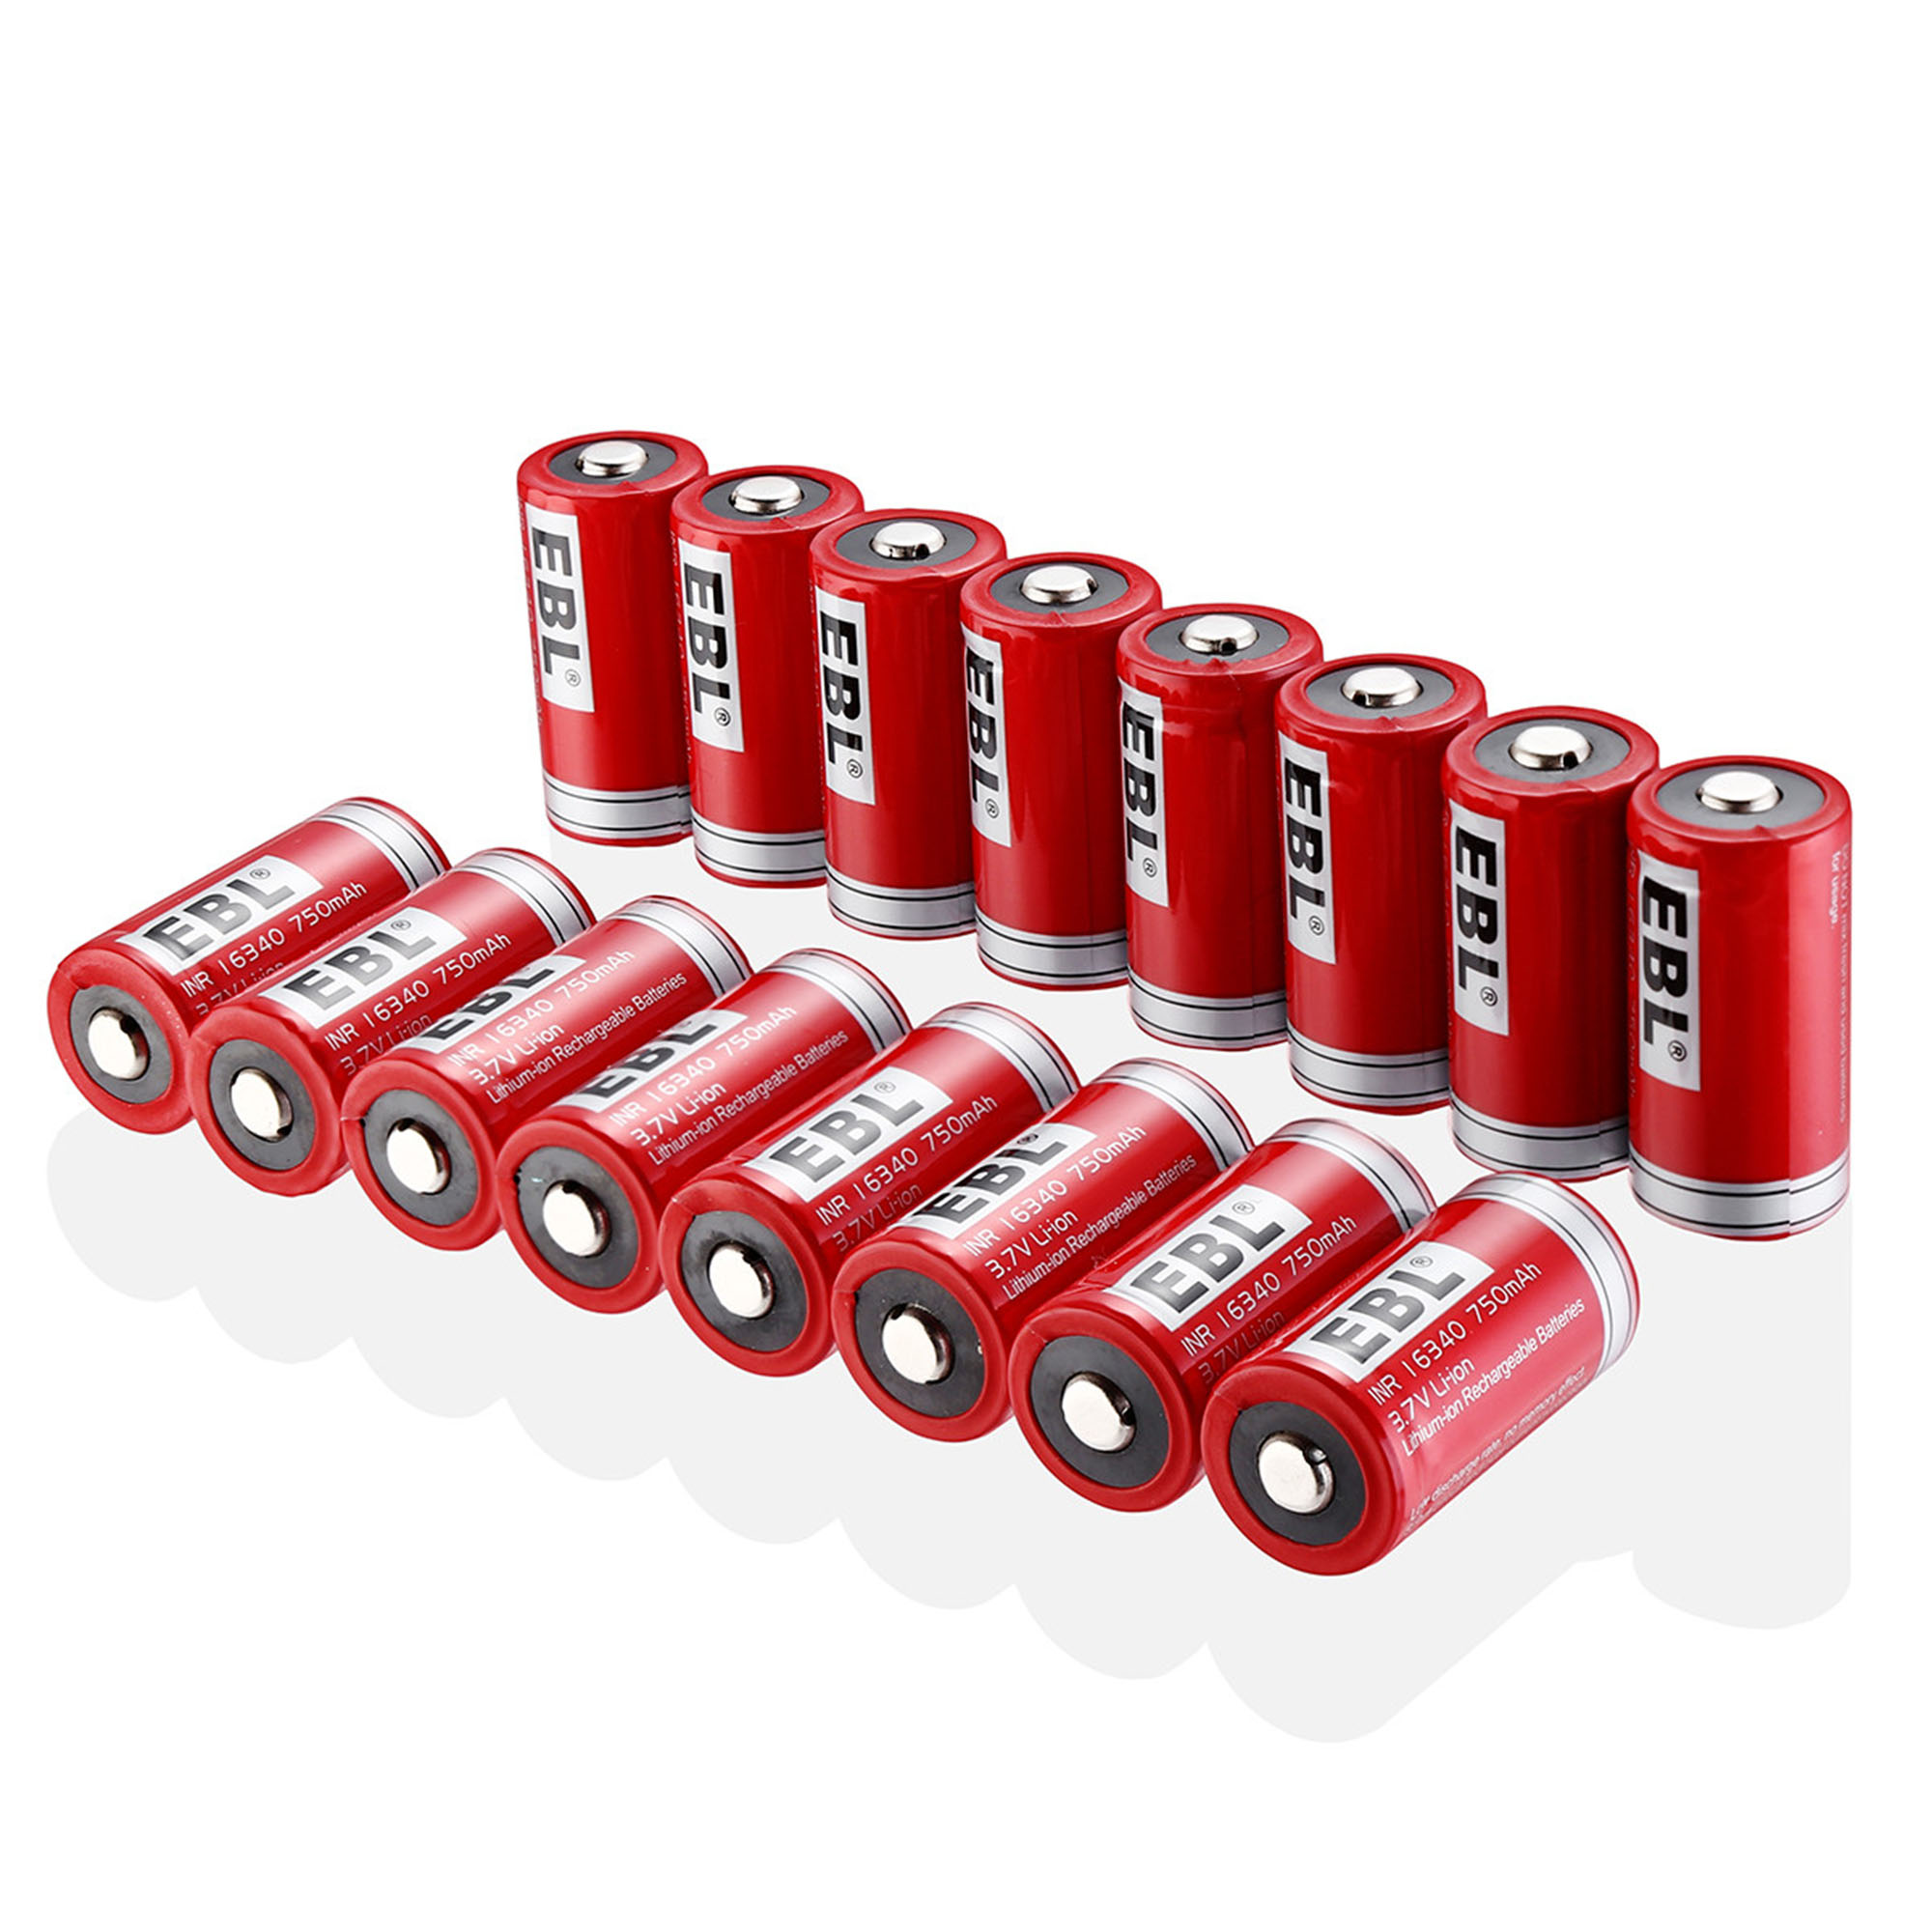 EBL 16-Pack 16340 RCR123A Battery 750mAh Lithium-ion Rechargeable Batteries Flashlight Arlo Wireless Security Cameras